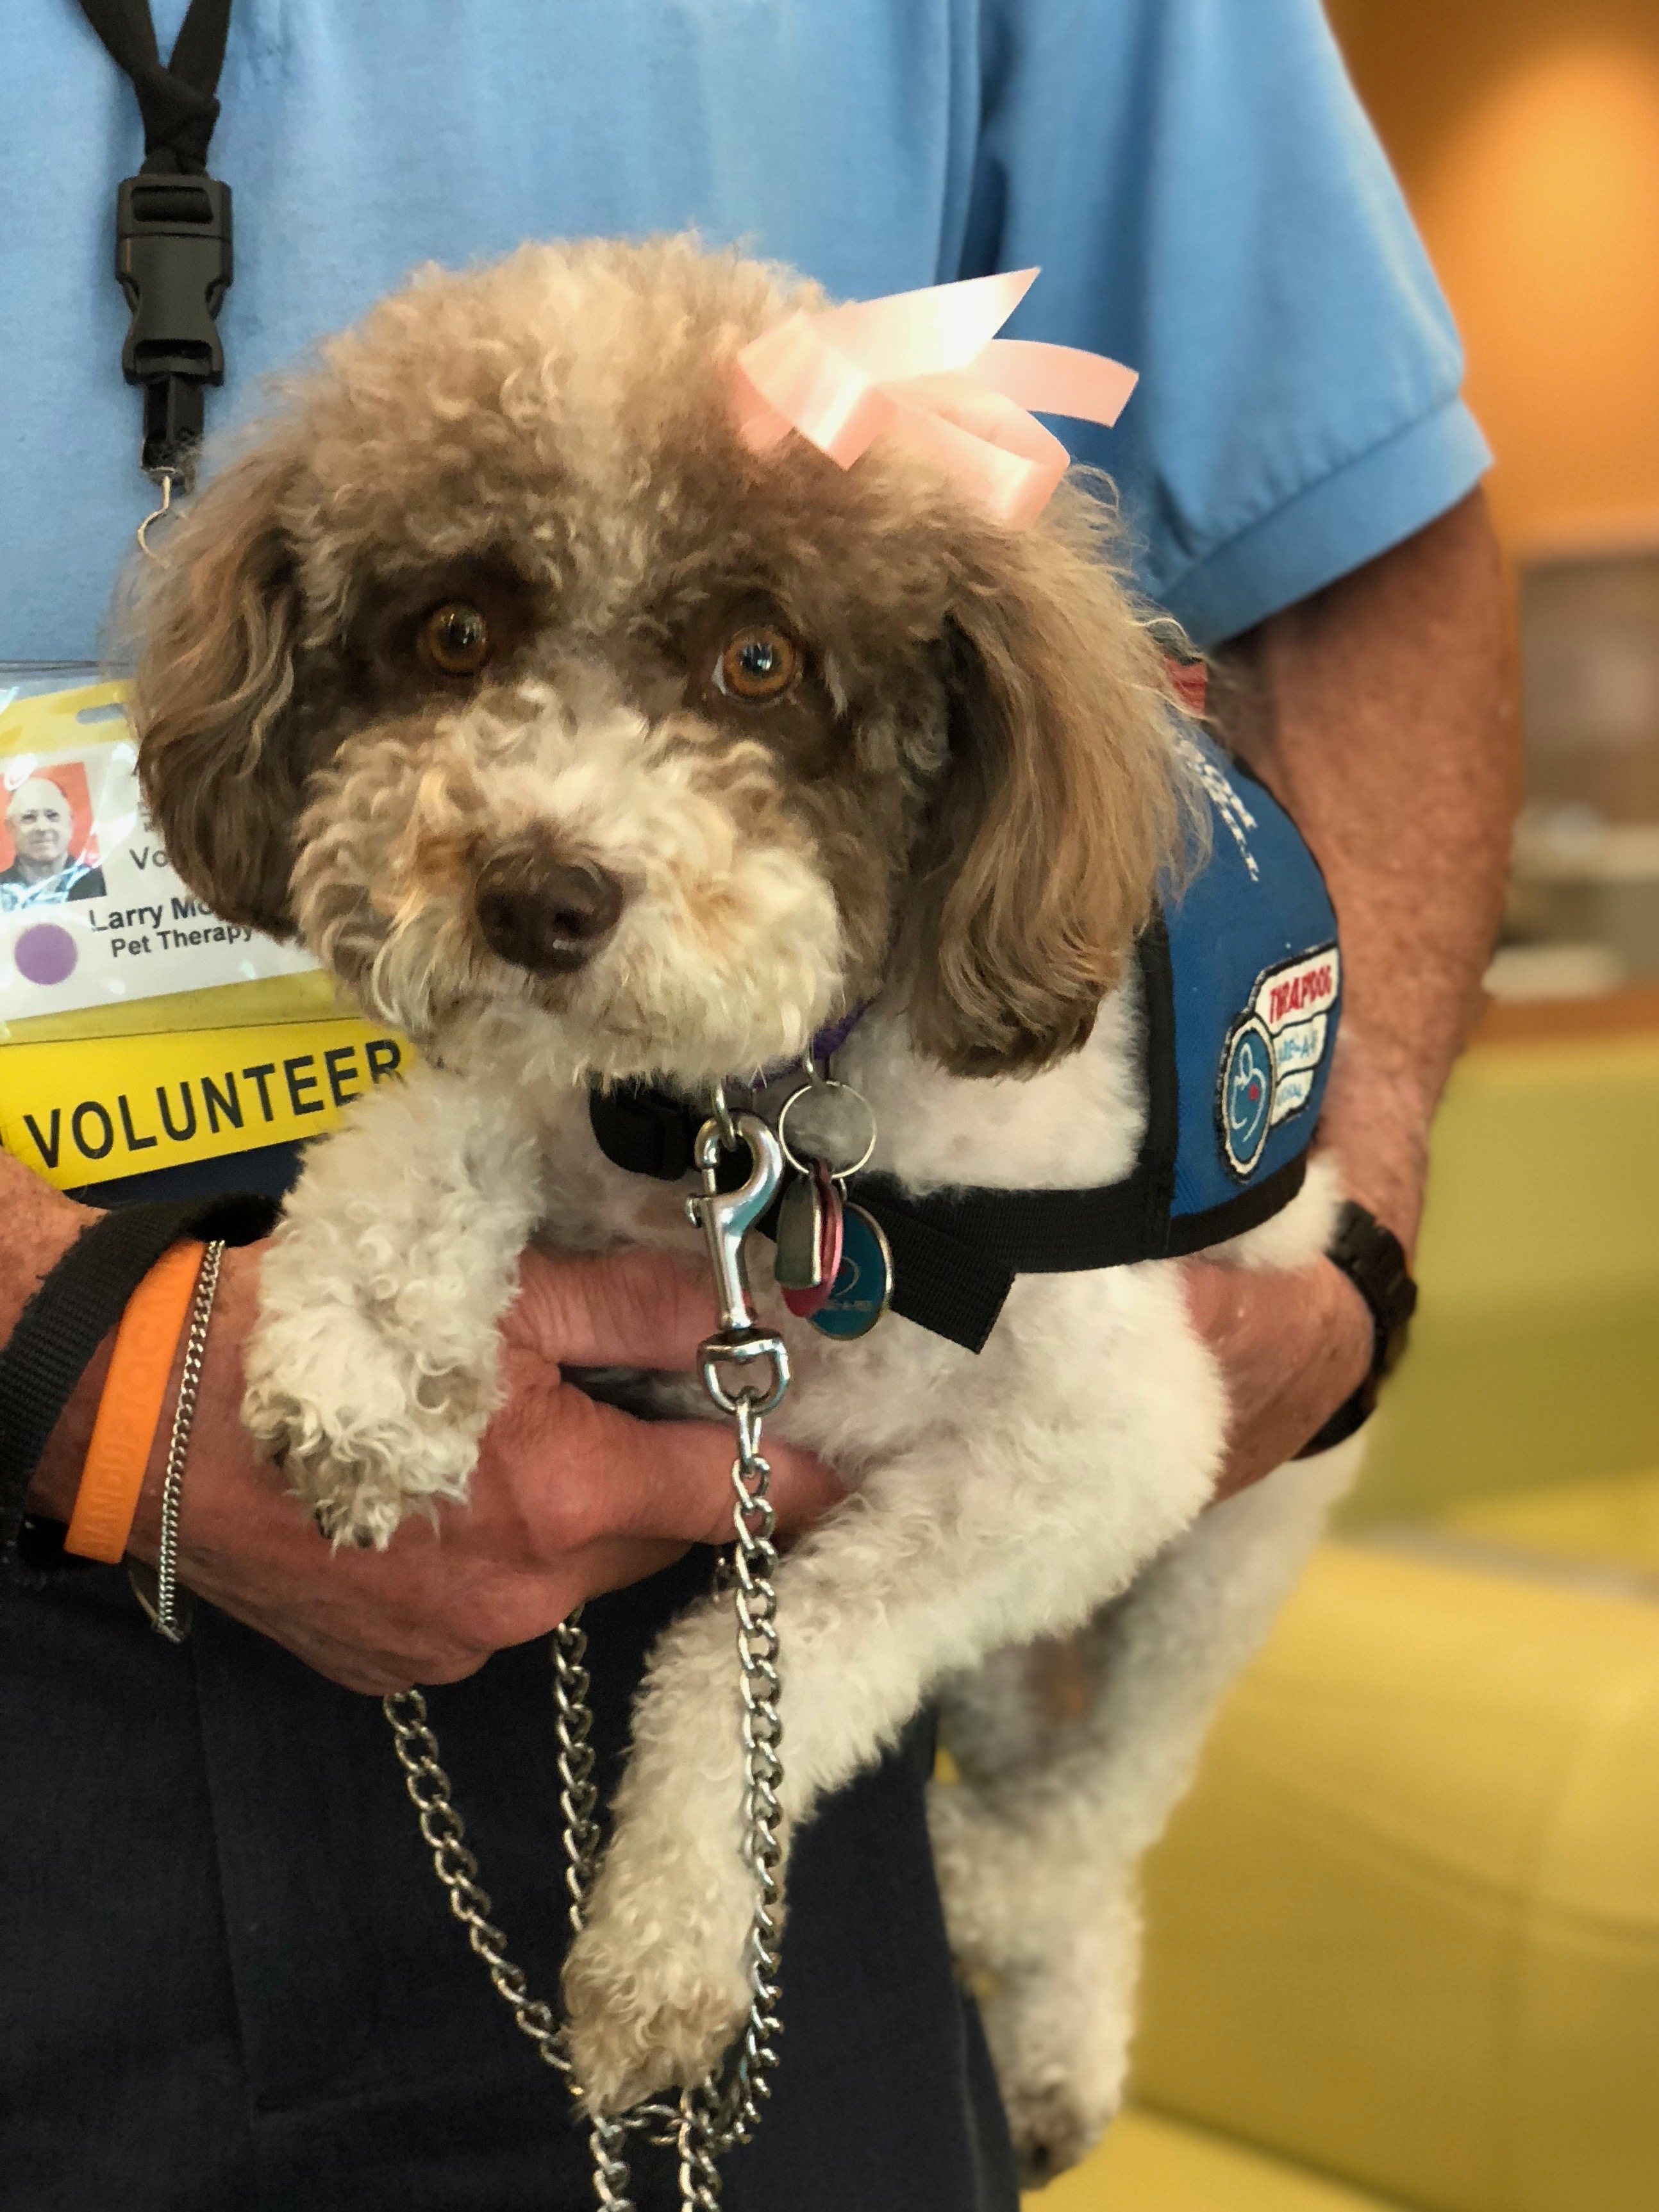 Schnauzer Poodle Mix Therapy Dog Being Held By Man